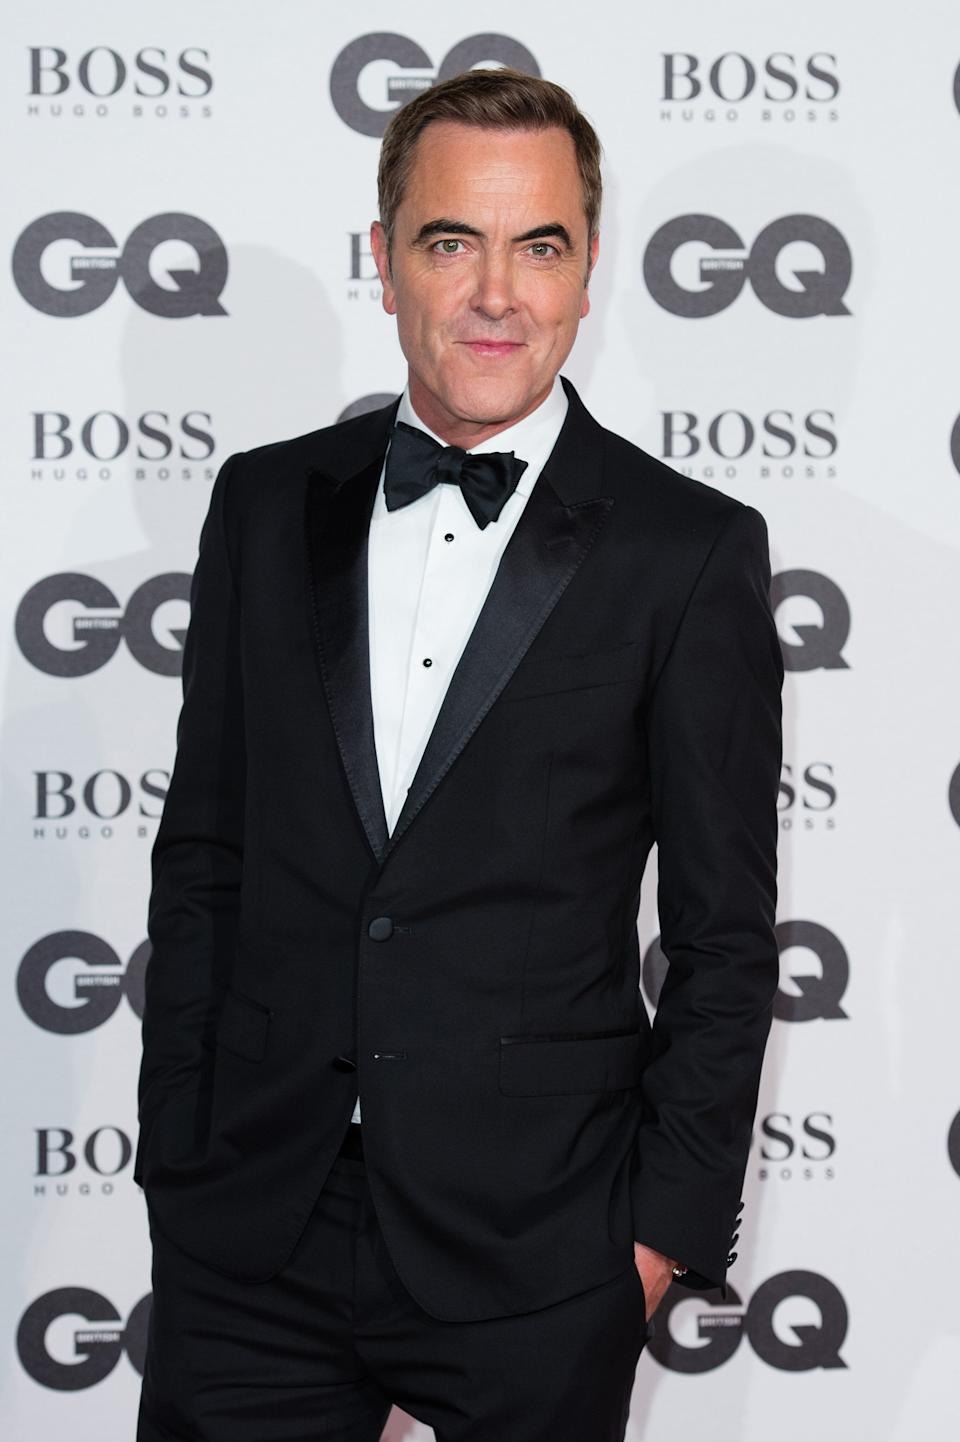 James Nesbitt pictured in 2016 (Photo: Jeff Spicer via Getty Images)